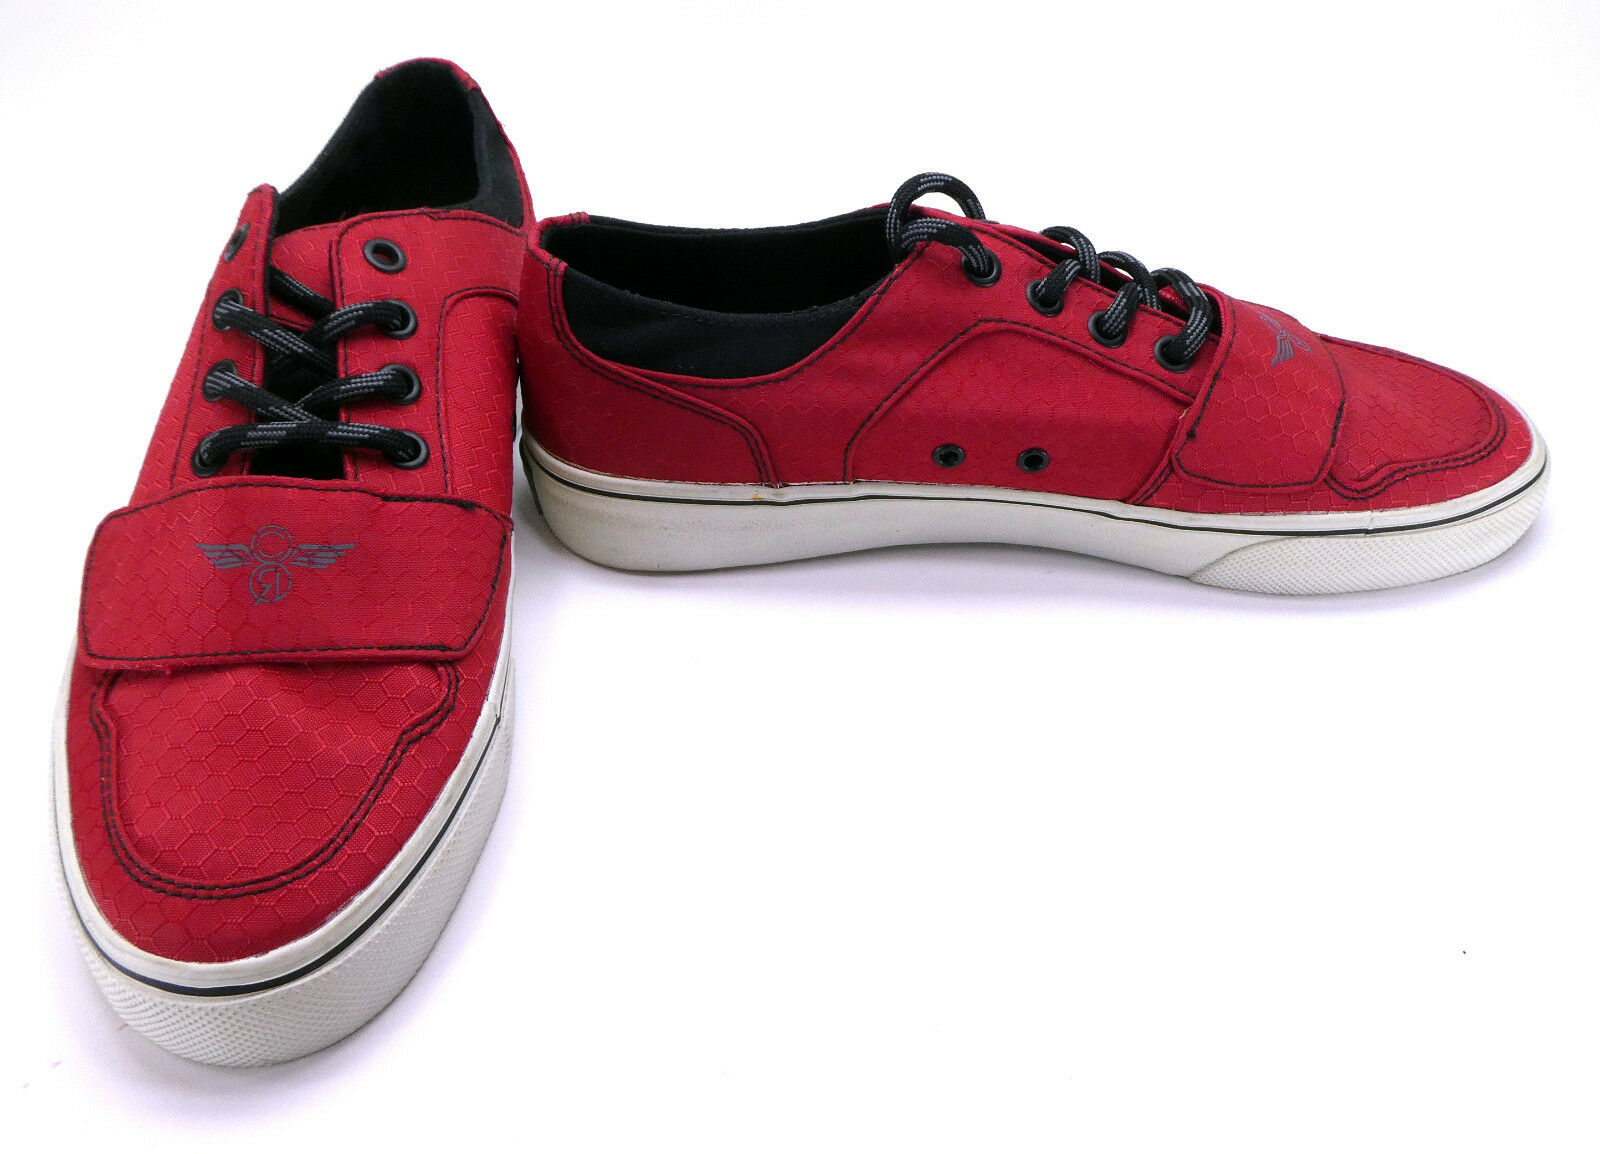 Creative Recreation shoes Cesario Lo XVI Hex Texture Red Black Sneakers Size 8